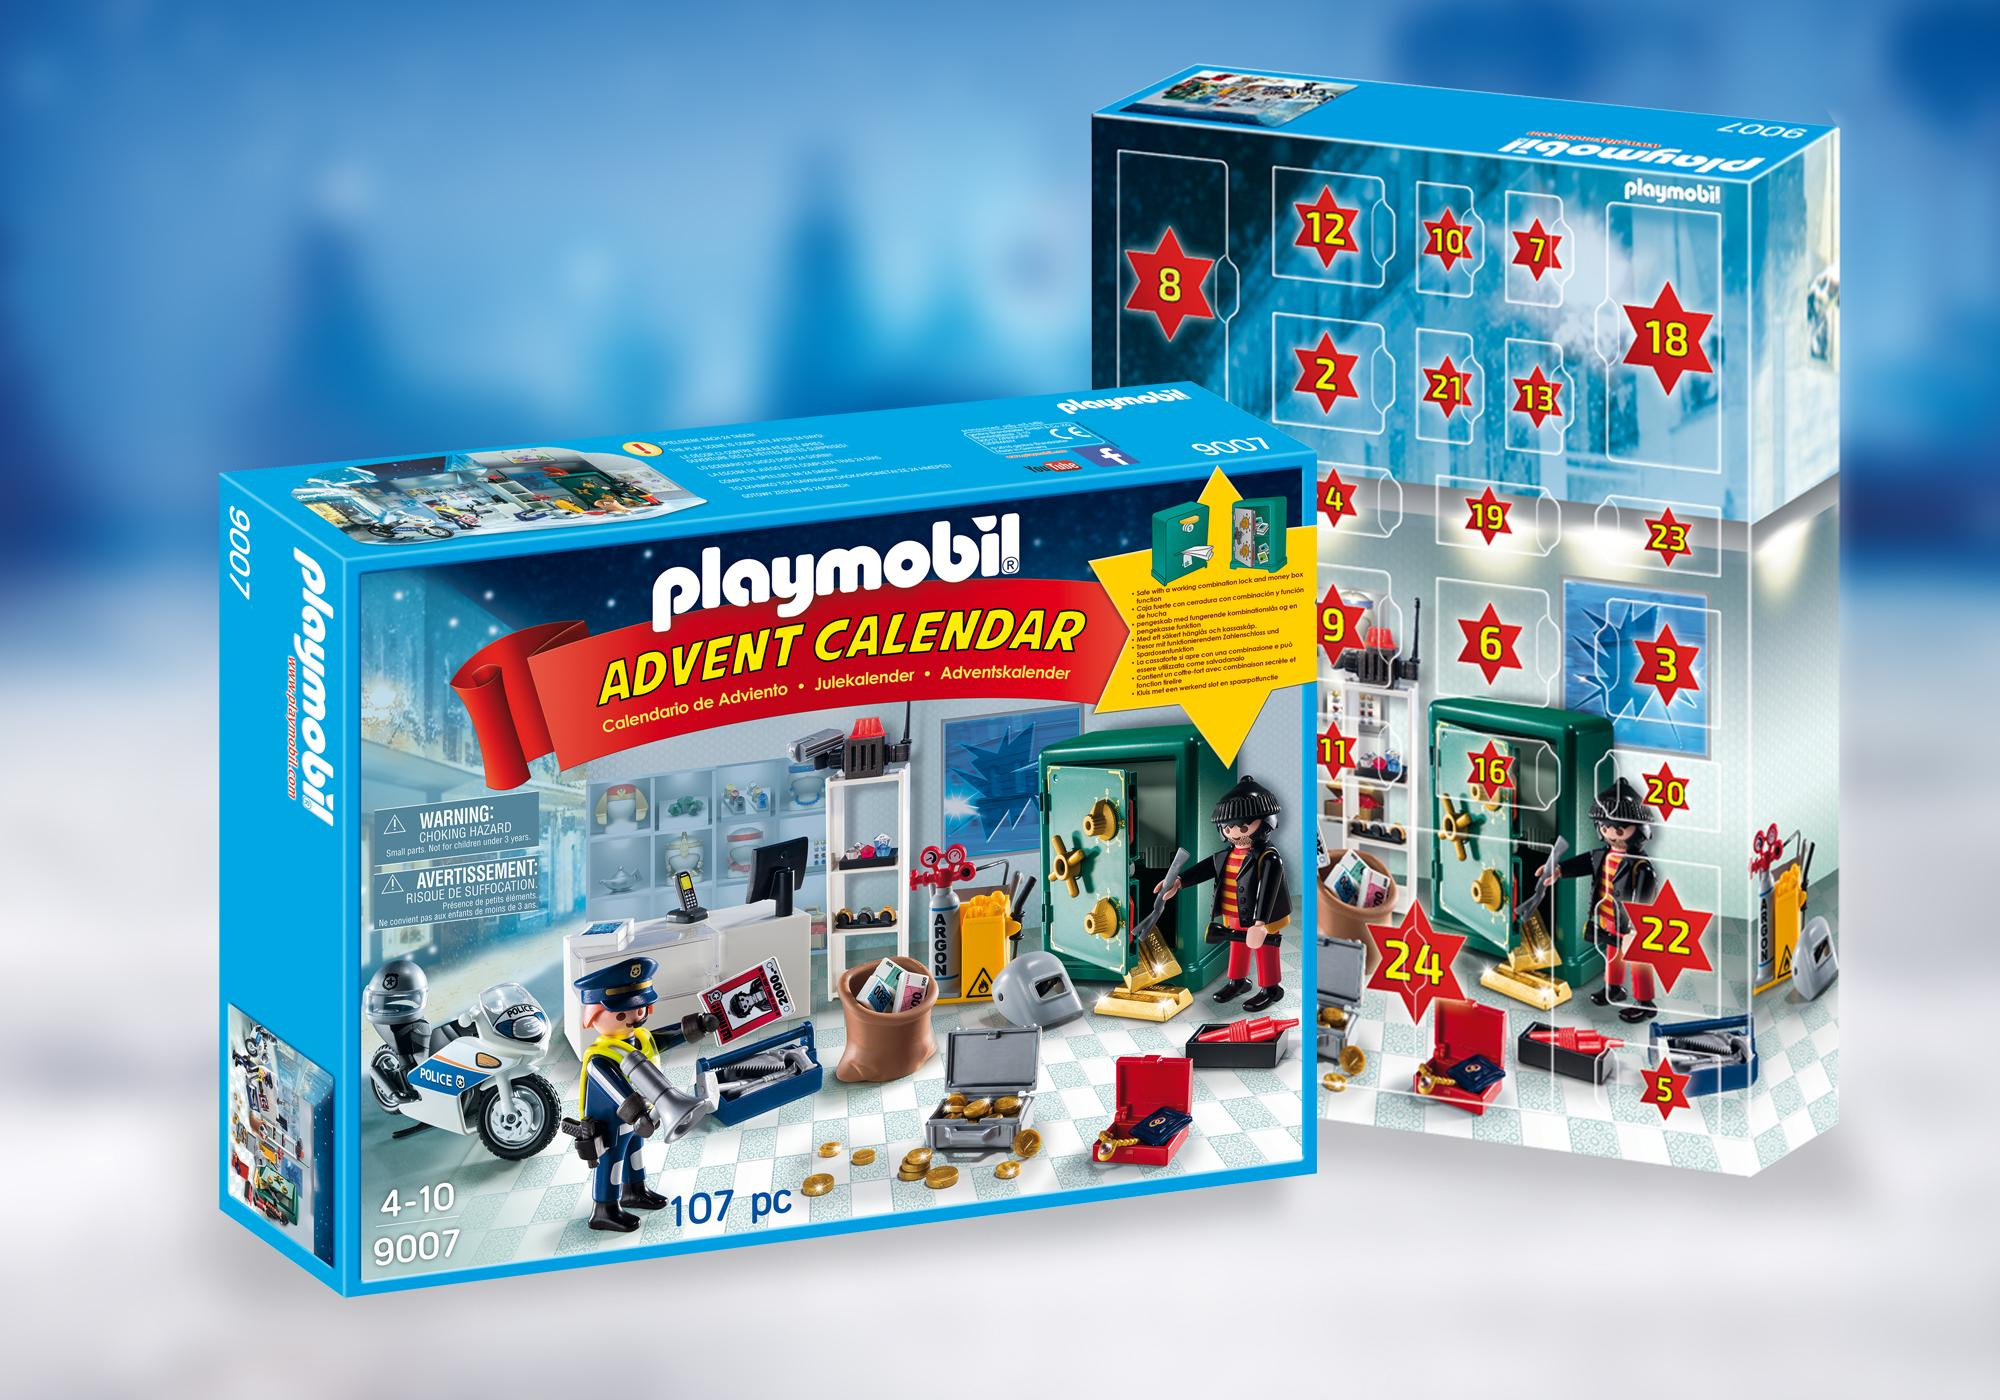 http://media.playmobil.com/i/playmobil/9007_product_detail